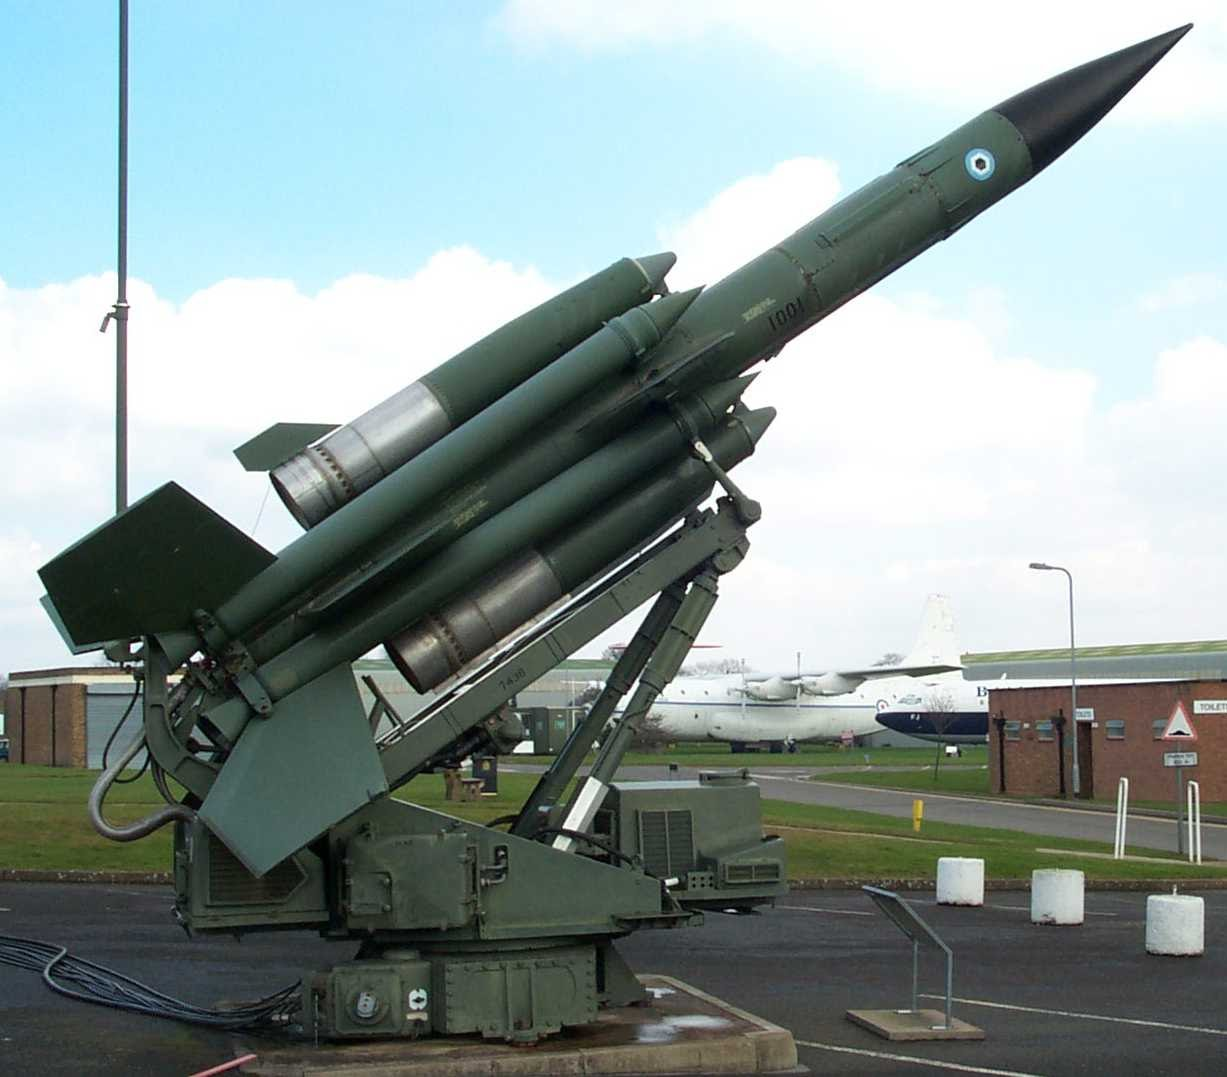 abm treaty The abm treaty is based on the proposition that stripping a nuclear power of a tough missile defense would inhibit it from launching an attack because the retaliation would be deadly ©mmi cbs.